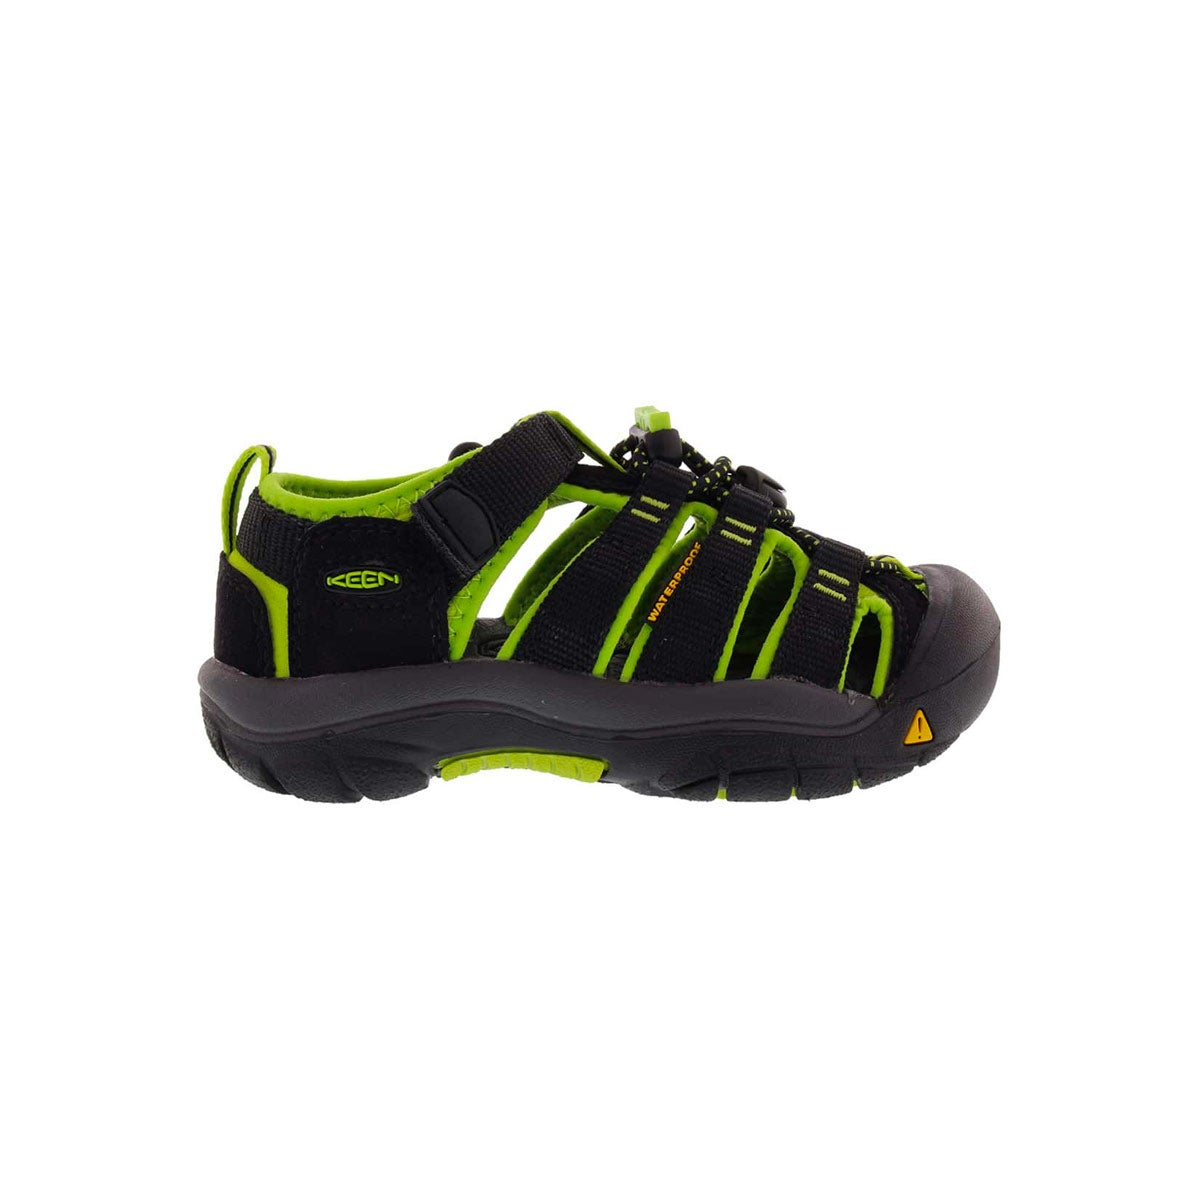 Sandales NewportH2Electric noir/lime, bé